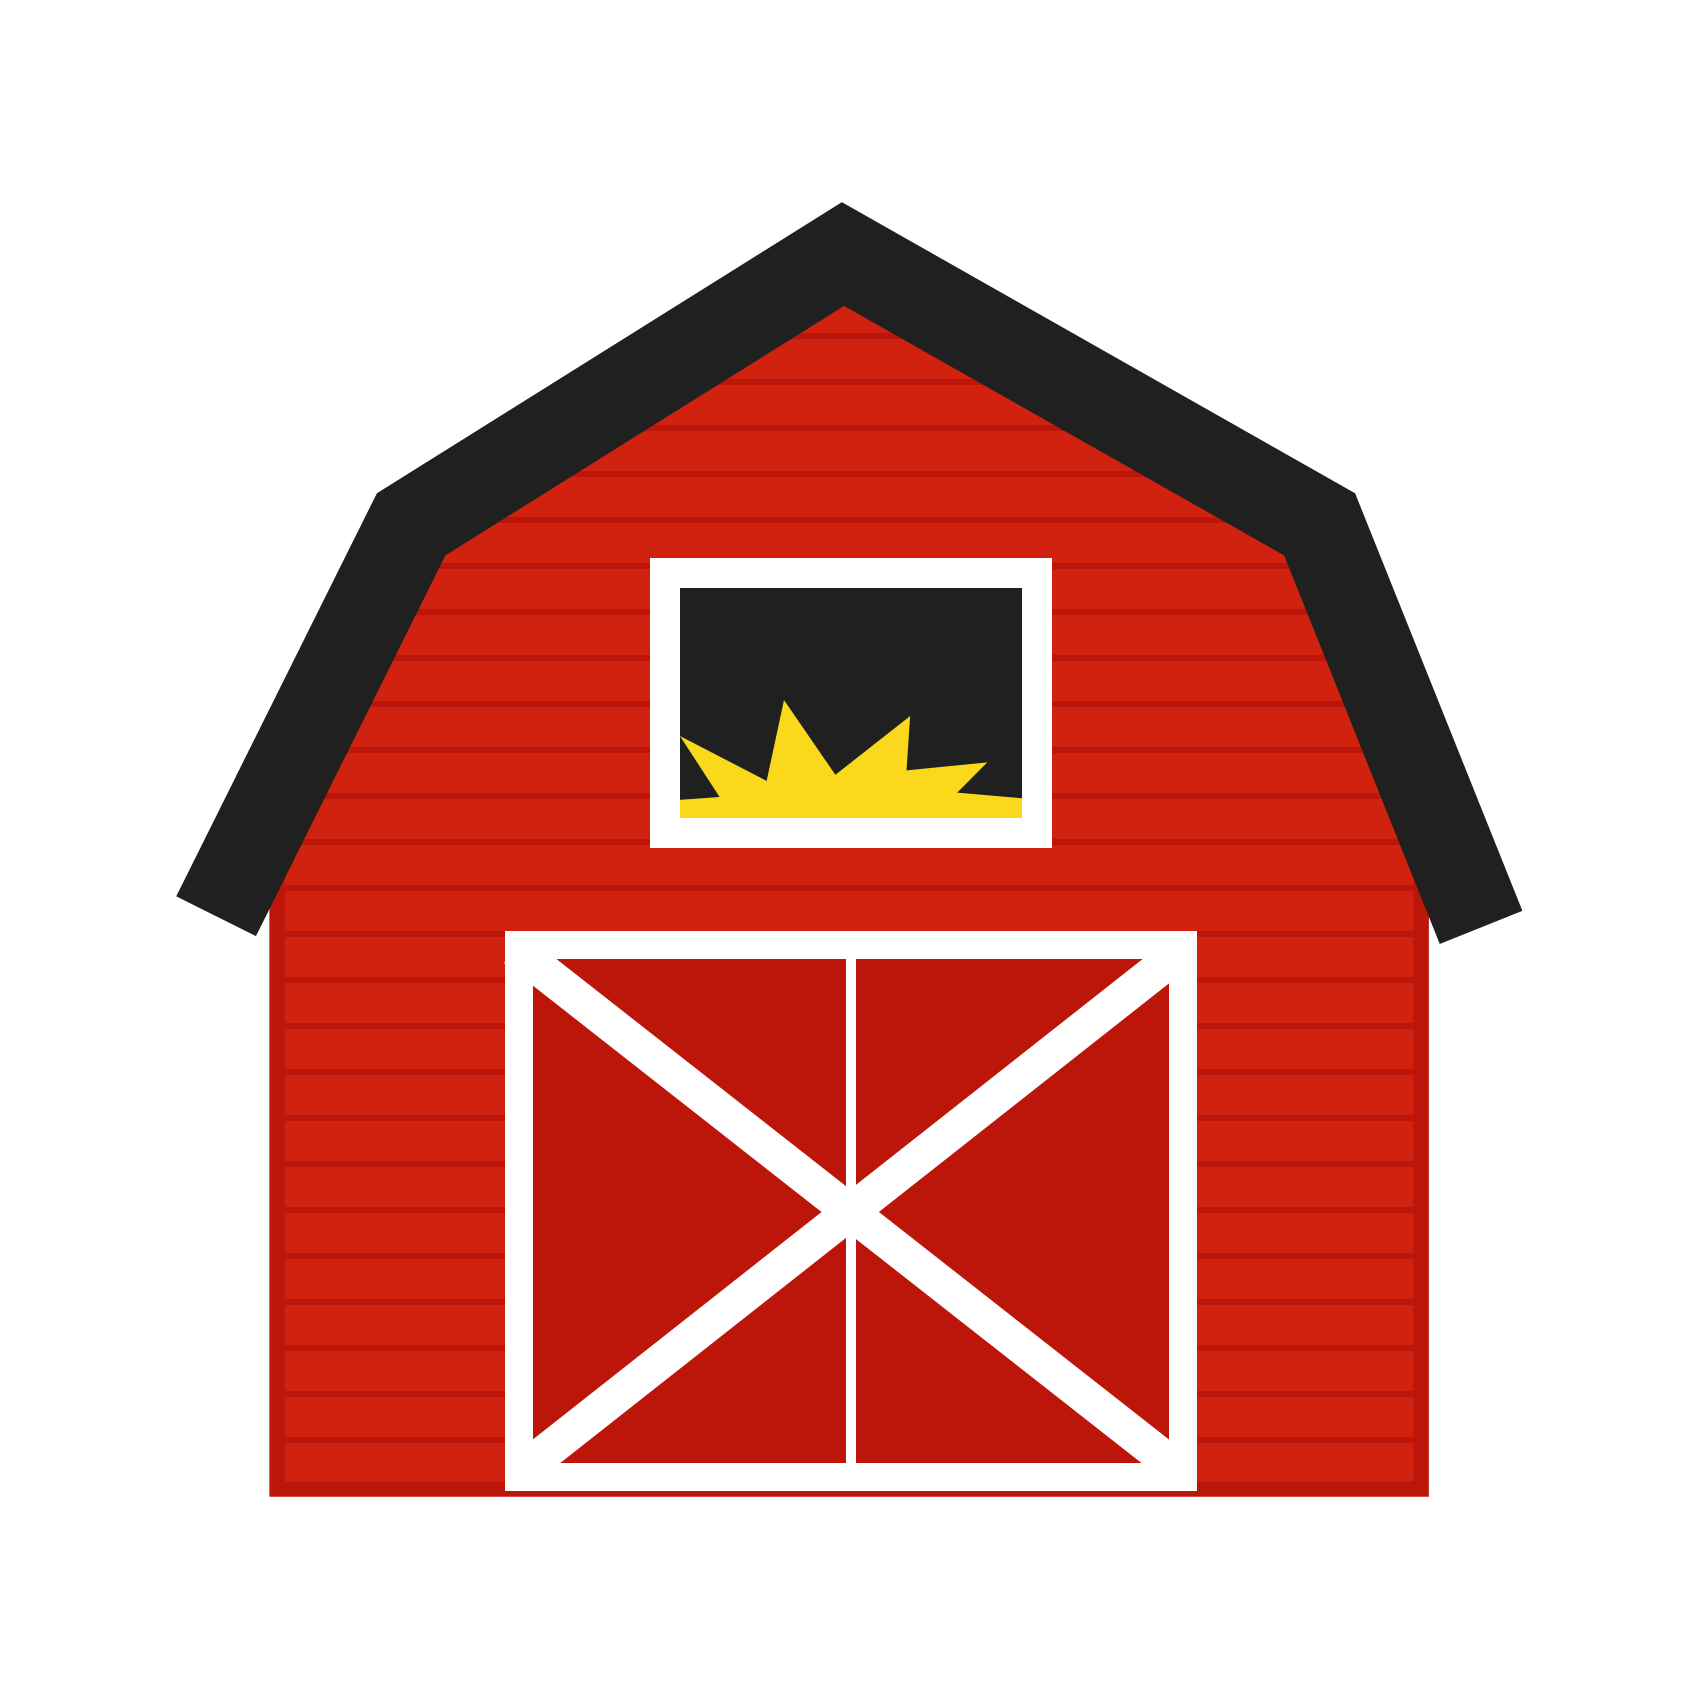 Clip Art Farm Barns Red Barn Clip Art Cartoon Barn Clip Art Barn Clip